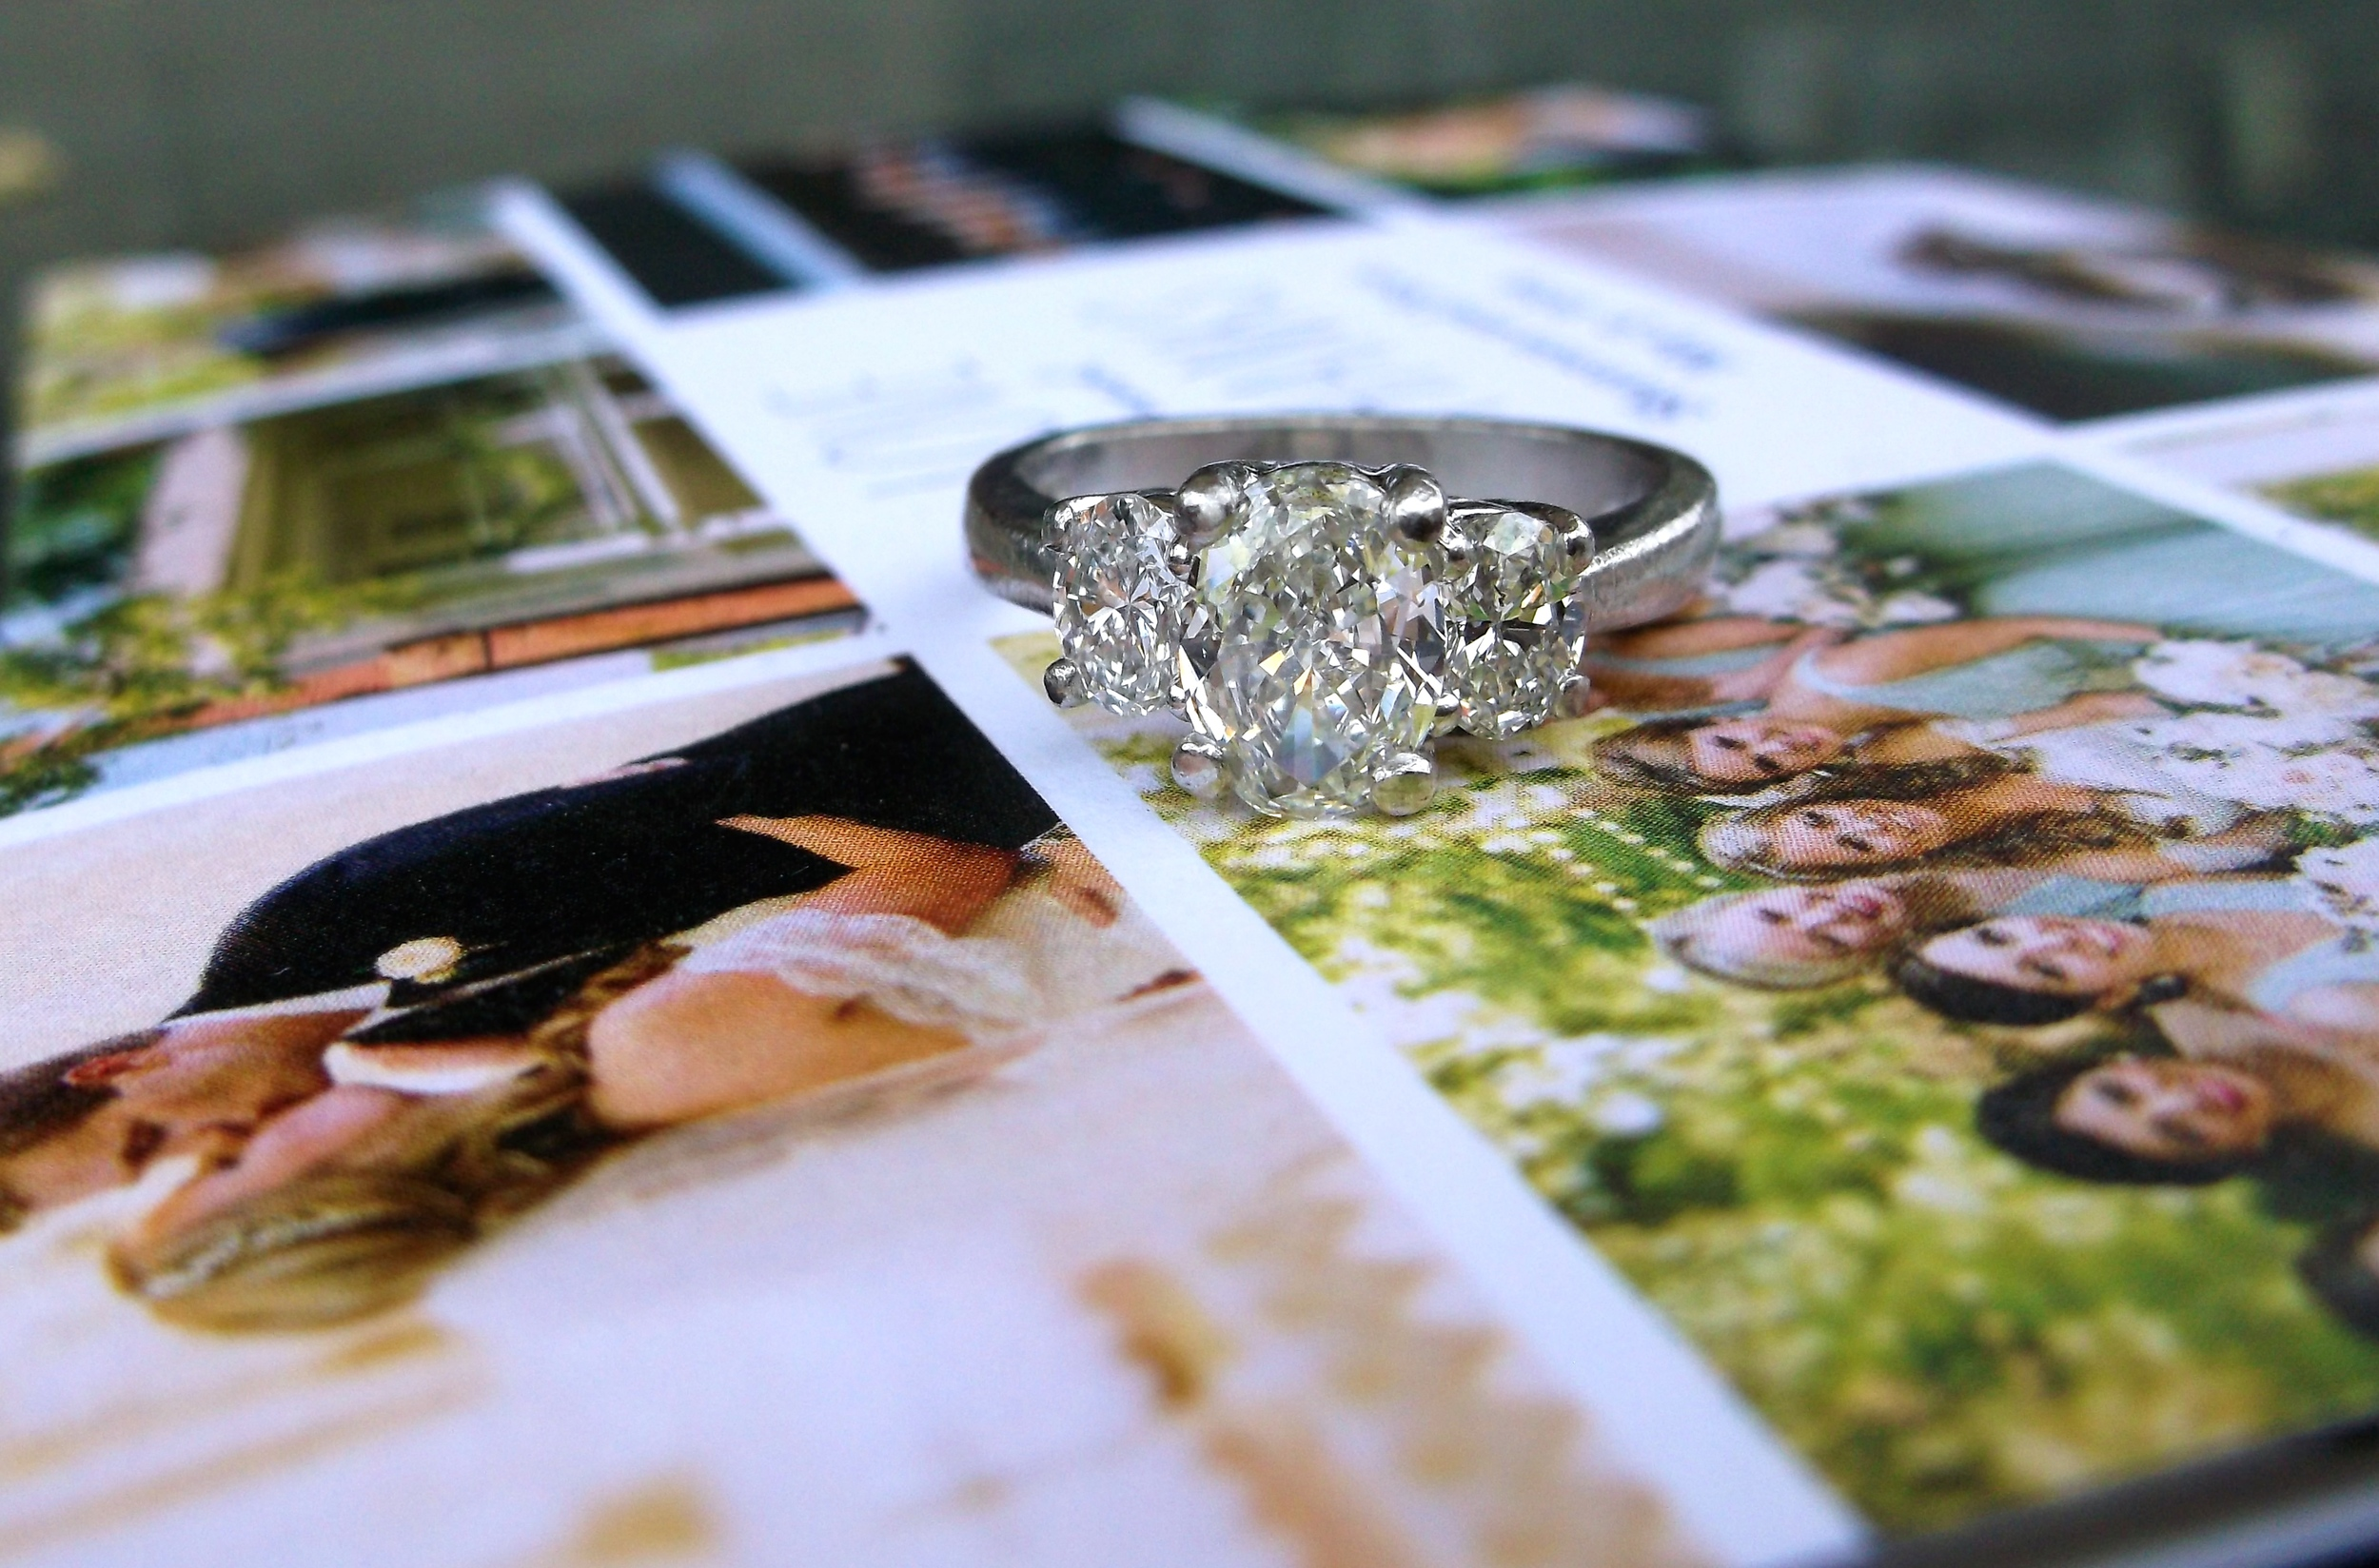 SOLD - Gorgeous three stone oval diamond ring set in platinum with a 0.95 carat diamond in the center and a 0.33 carat diamond on either side.   Thank you to Shannon and Scott for sending us such a lovely not with beautiful pictures from your wedding! We are honored to be a part of your story!